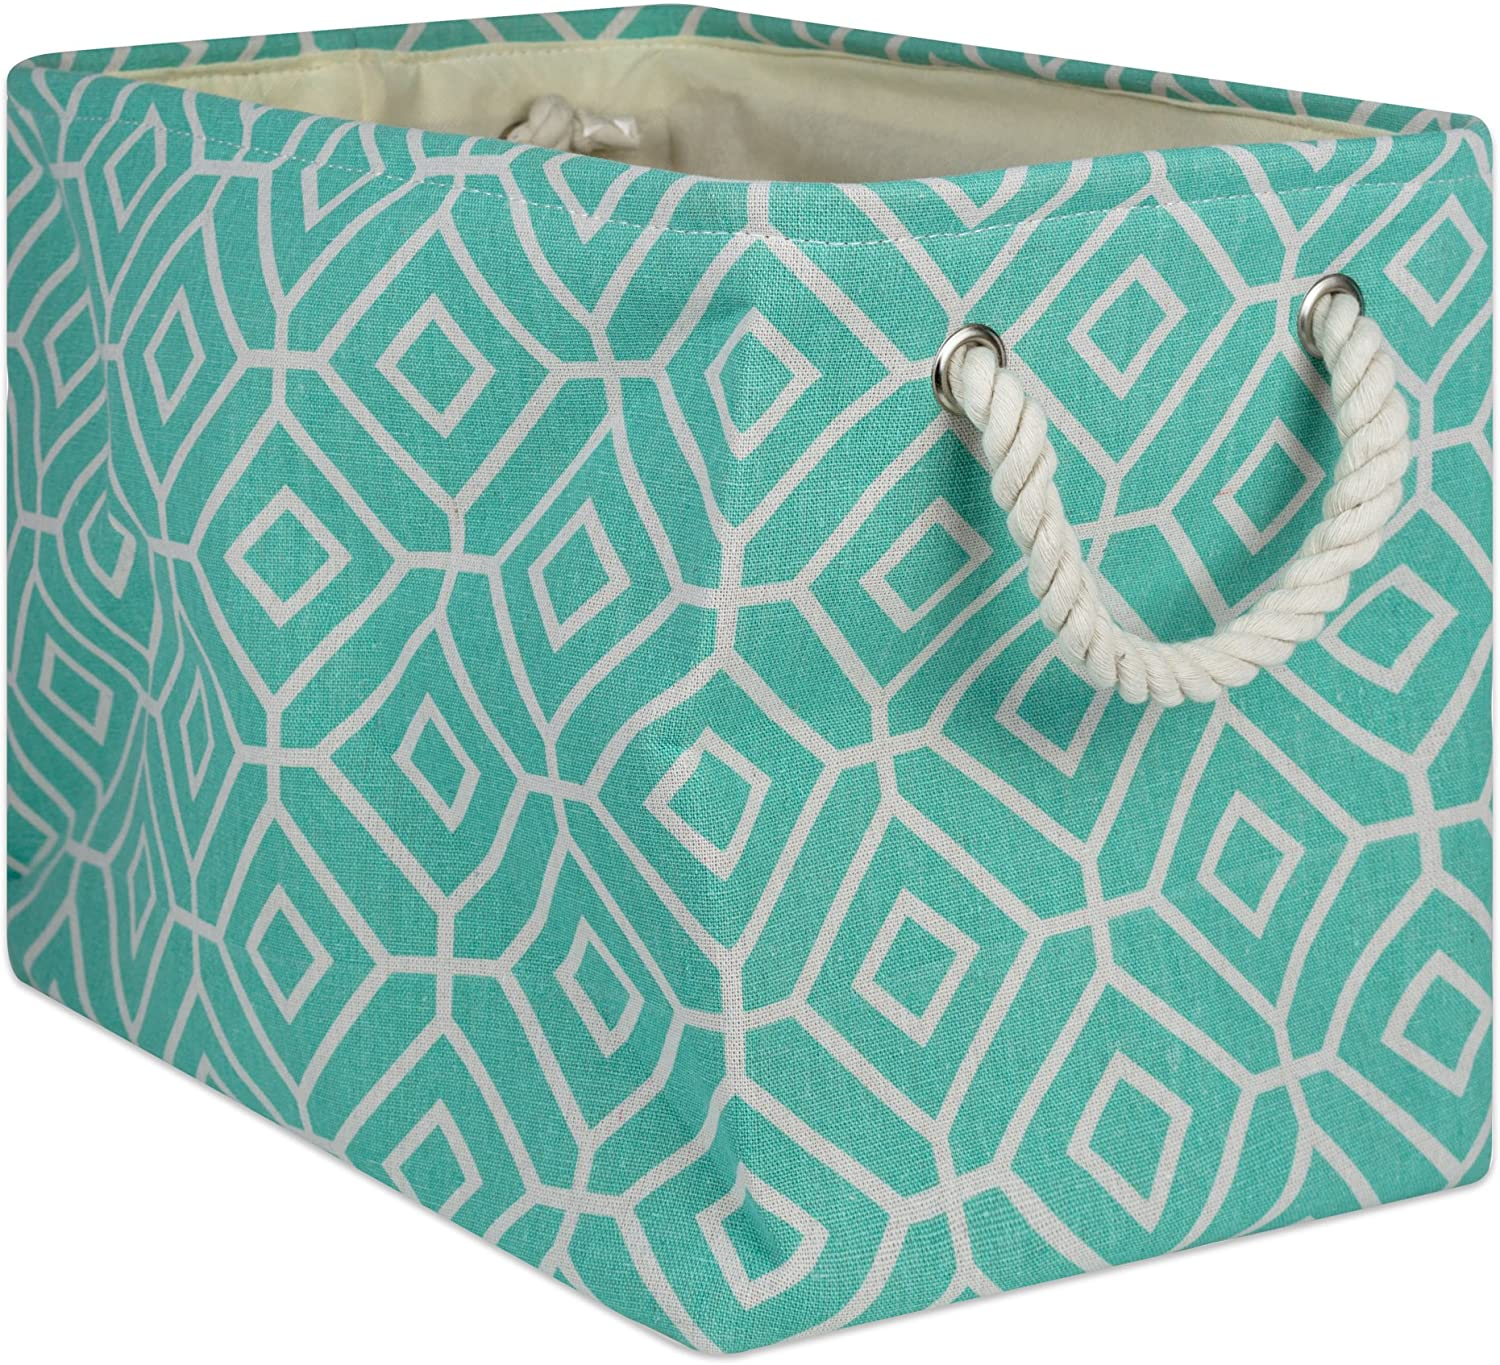 DII Collapsible Polyester Storage Basket Or Bin with Durable Cotton Handles, Home Organizer Solution for Office, Bedroom Closet, Toys, and Laundry, Medium-16x10x12, Stained Glass Aqua